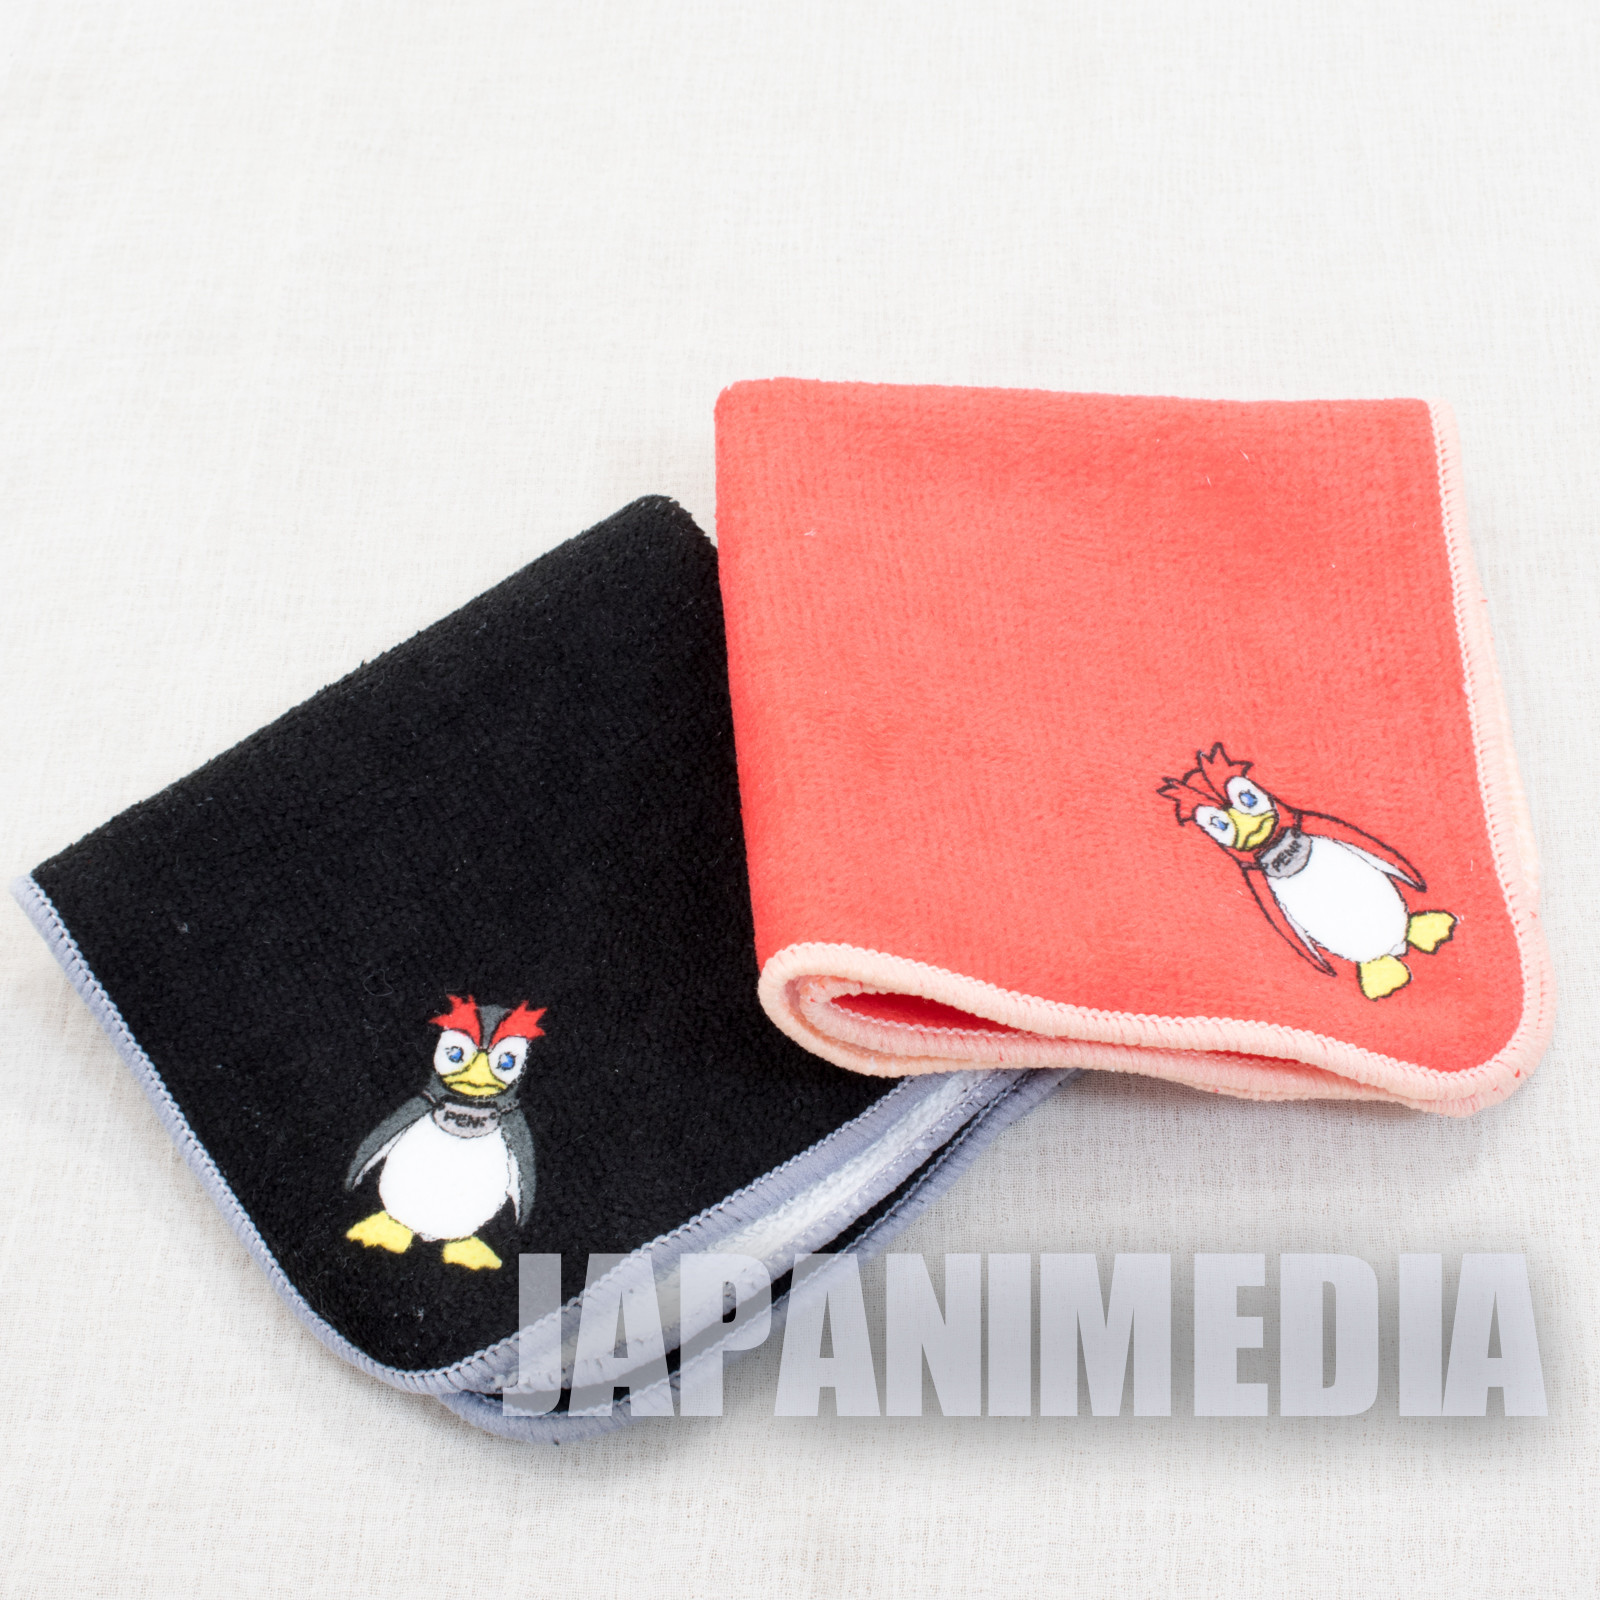 Evangelion PenPen Penguin Hand Towel Set JAPAN ANIME